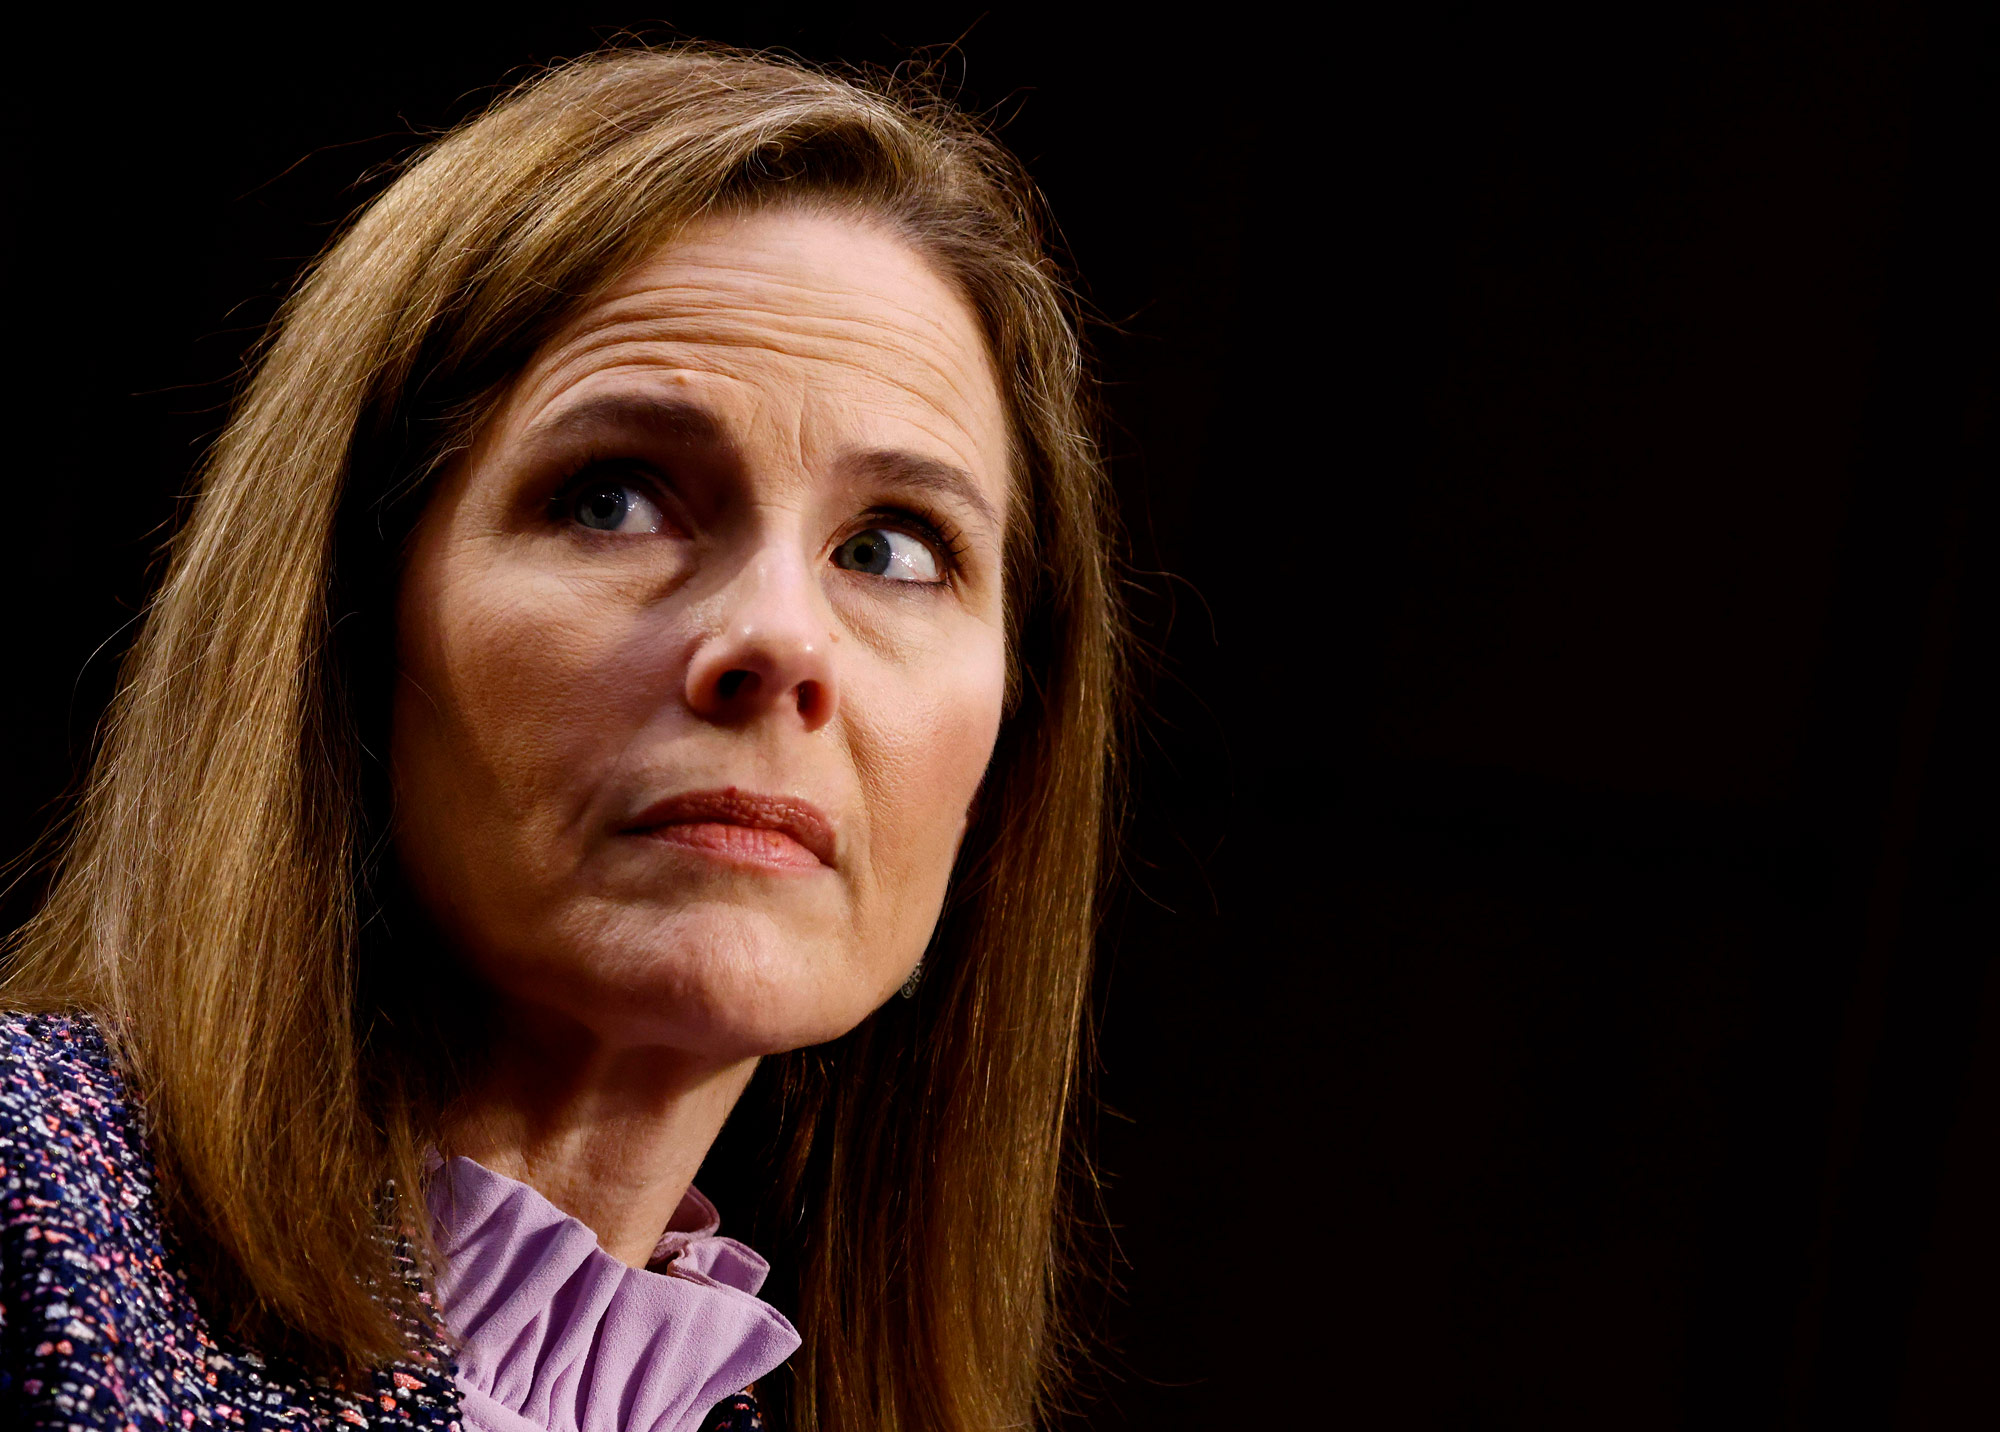 Judge Amy Coney Barrett testifies on the third day of her confirmation hearing before the Senate Judiciary Committee on Capitol Hill on October 14 in Washington, DC.